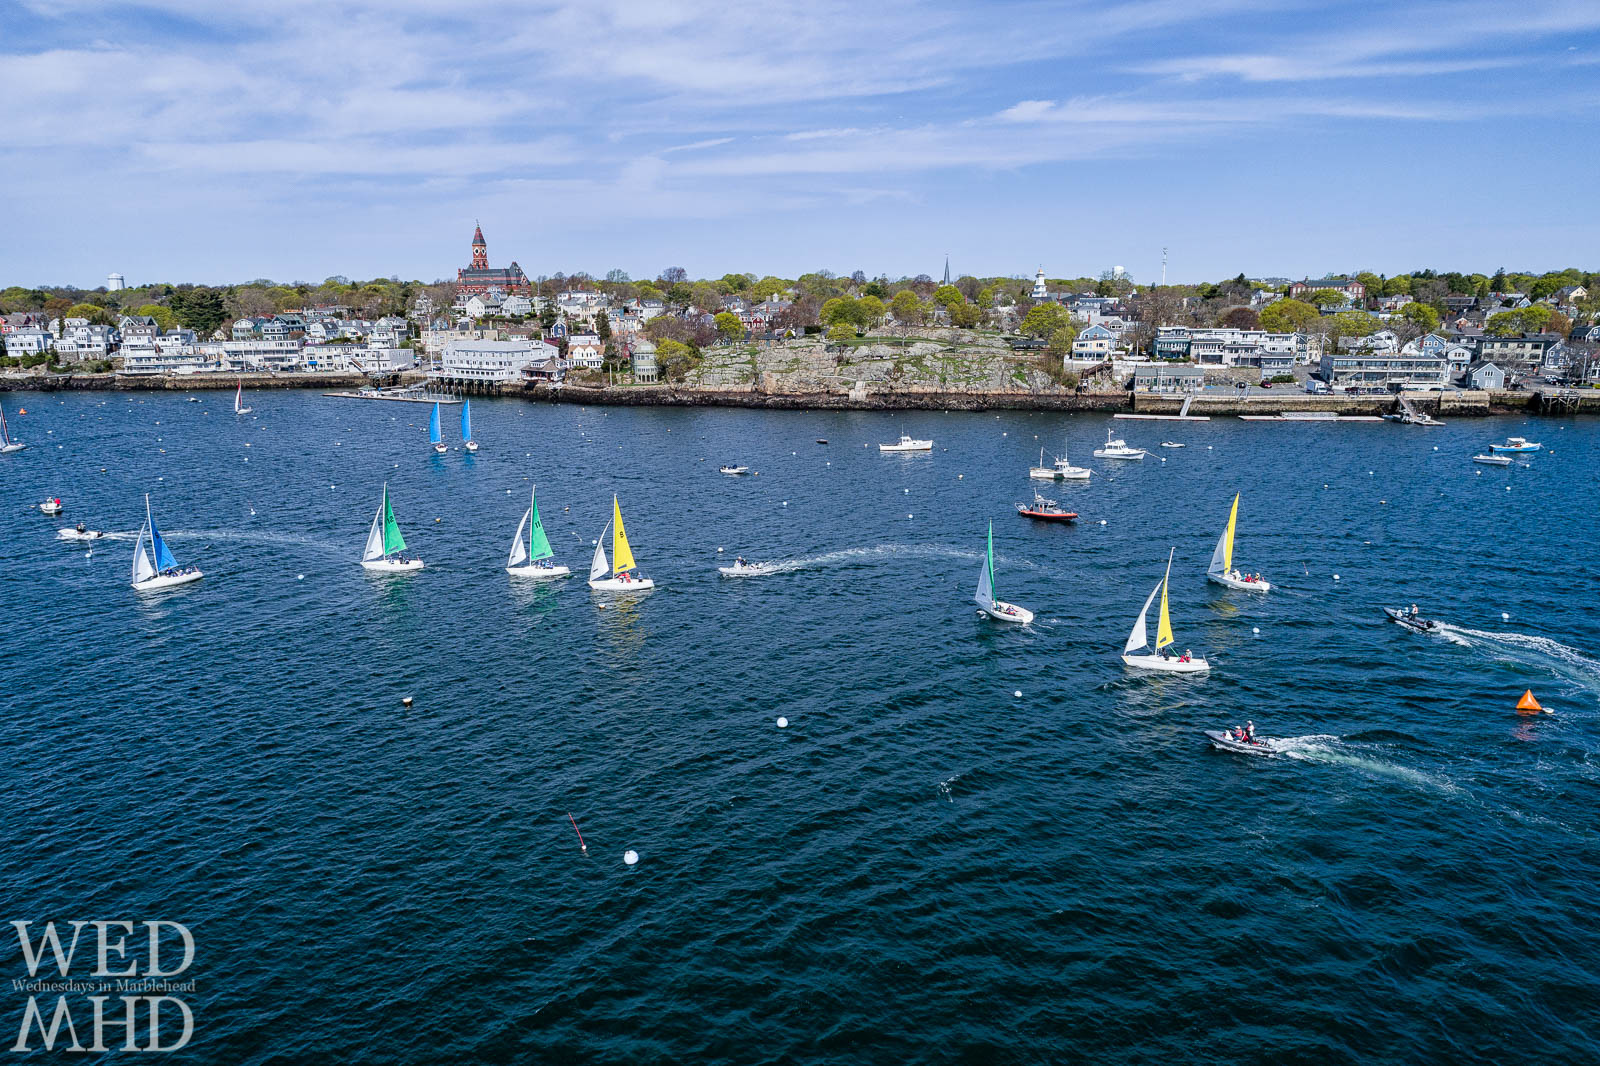 An aerial view of stiff competition during Jackson Cup racing in Marblehead Harbor features boats flying colorful sails as they cross in front of familiar landmarks